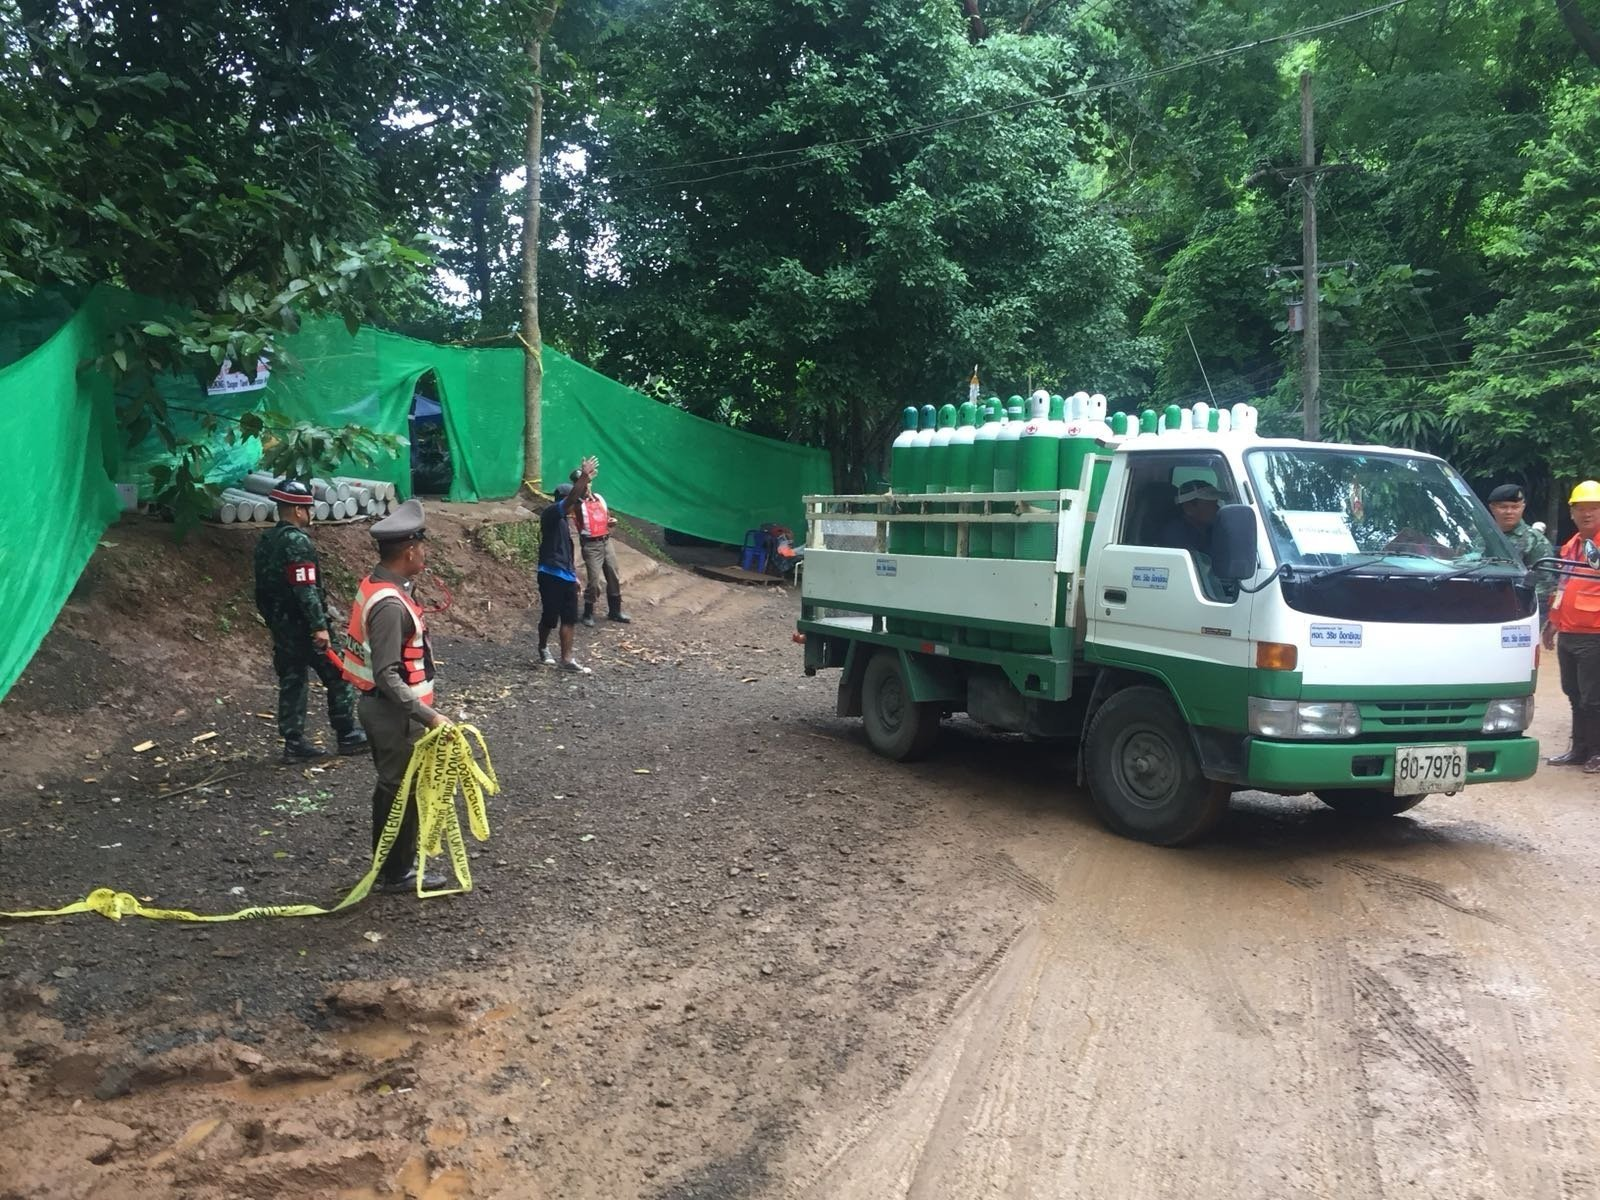 Oxygen being delivered to the entrance of the site, and military police sealing off cave site.